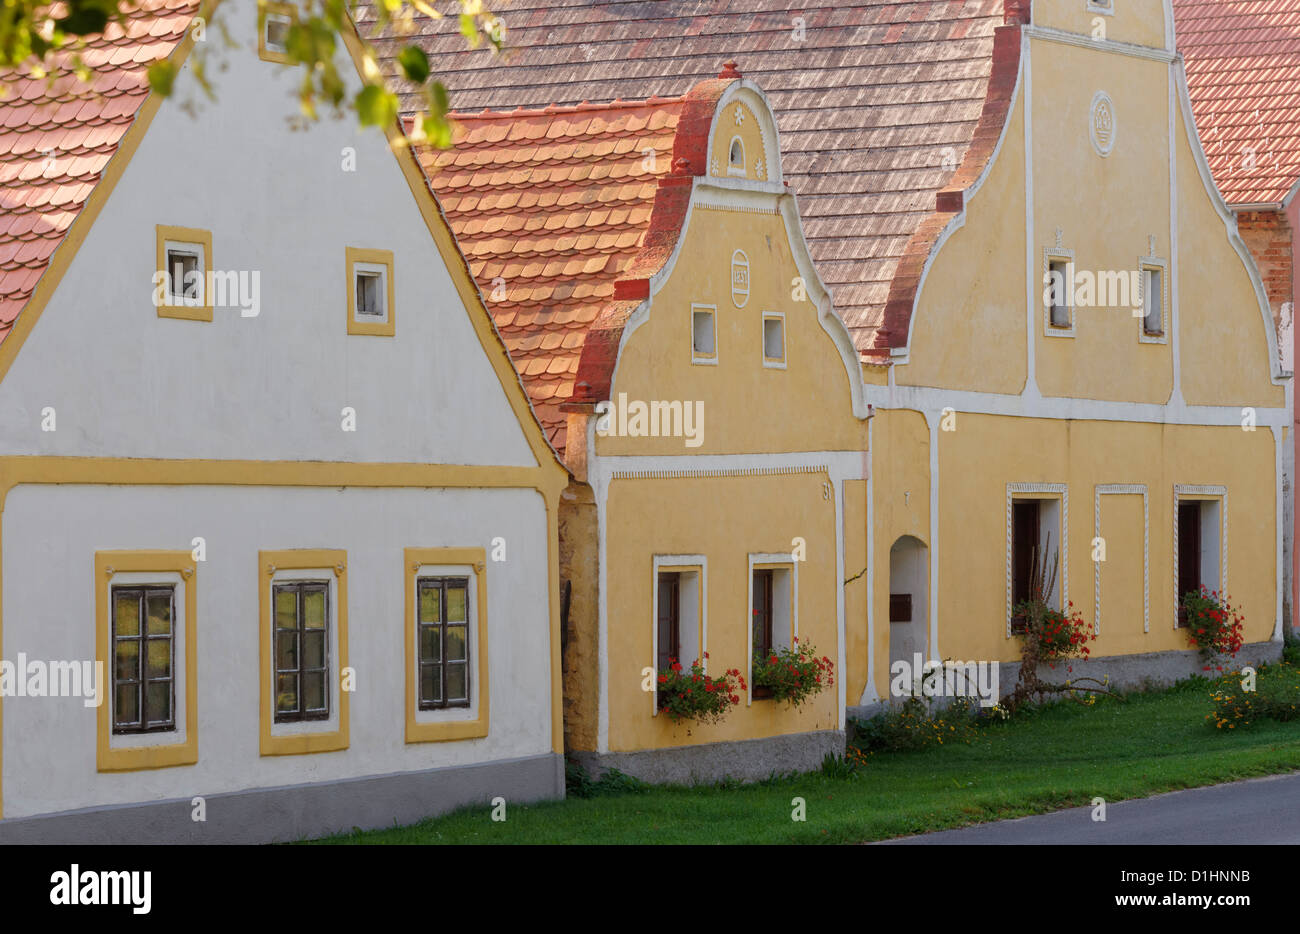 Gables of houses and farmsteads in Holasovice, South Bohemia, Czech Republic - Stock Image